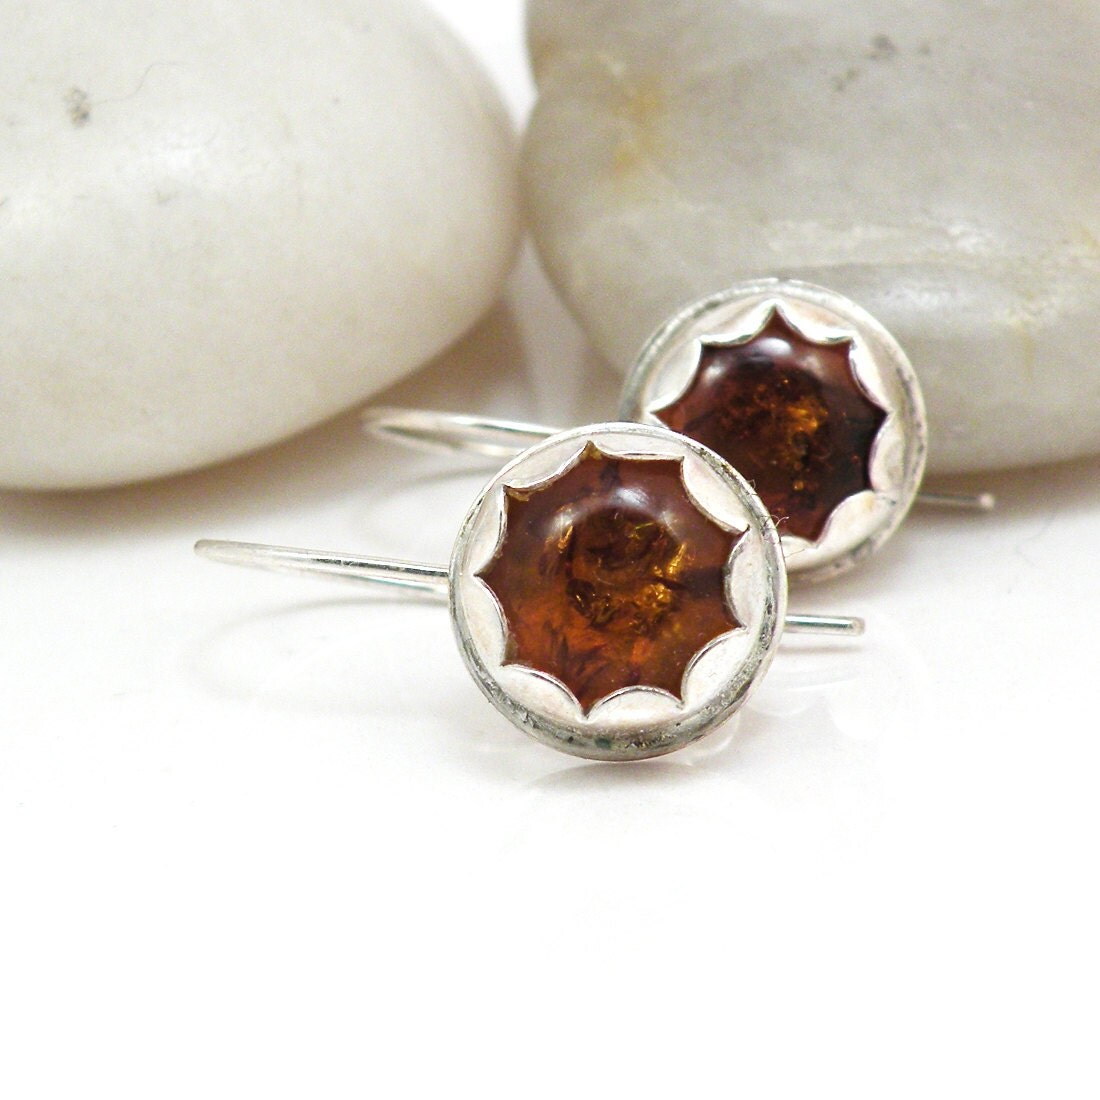 Amber Earrings on Amber Earrings Sterling Silver Flower Jewelry   Amber Blooms